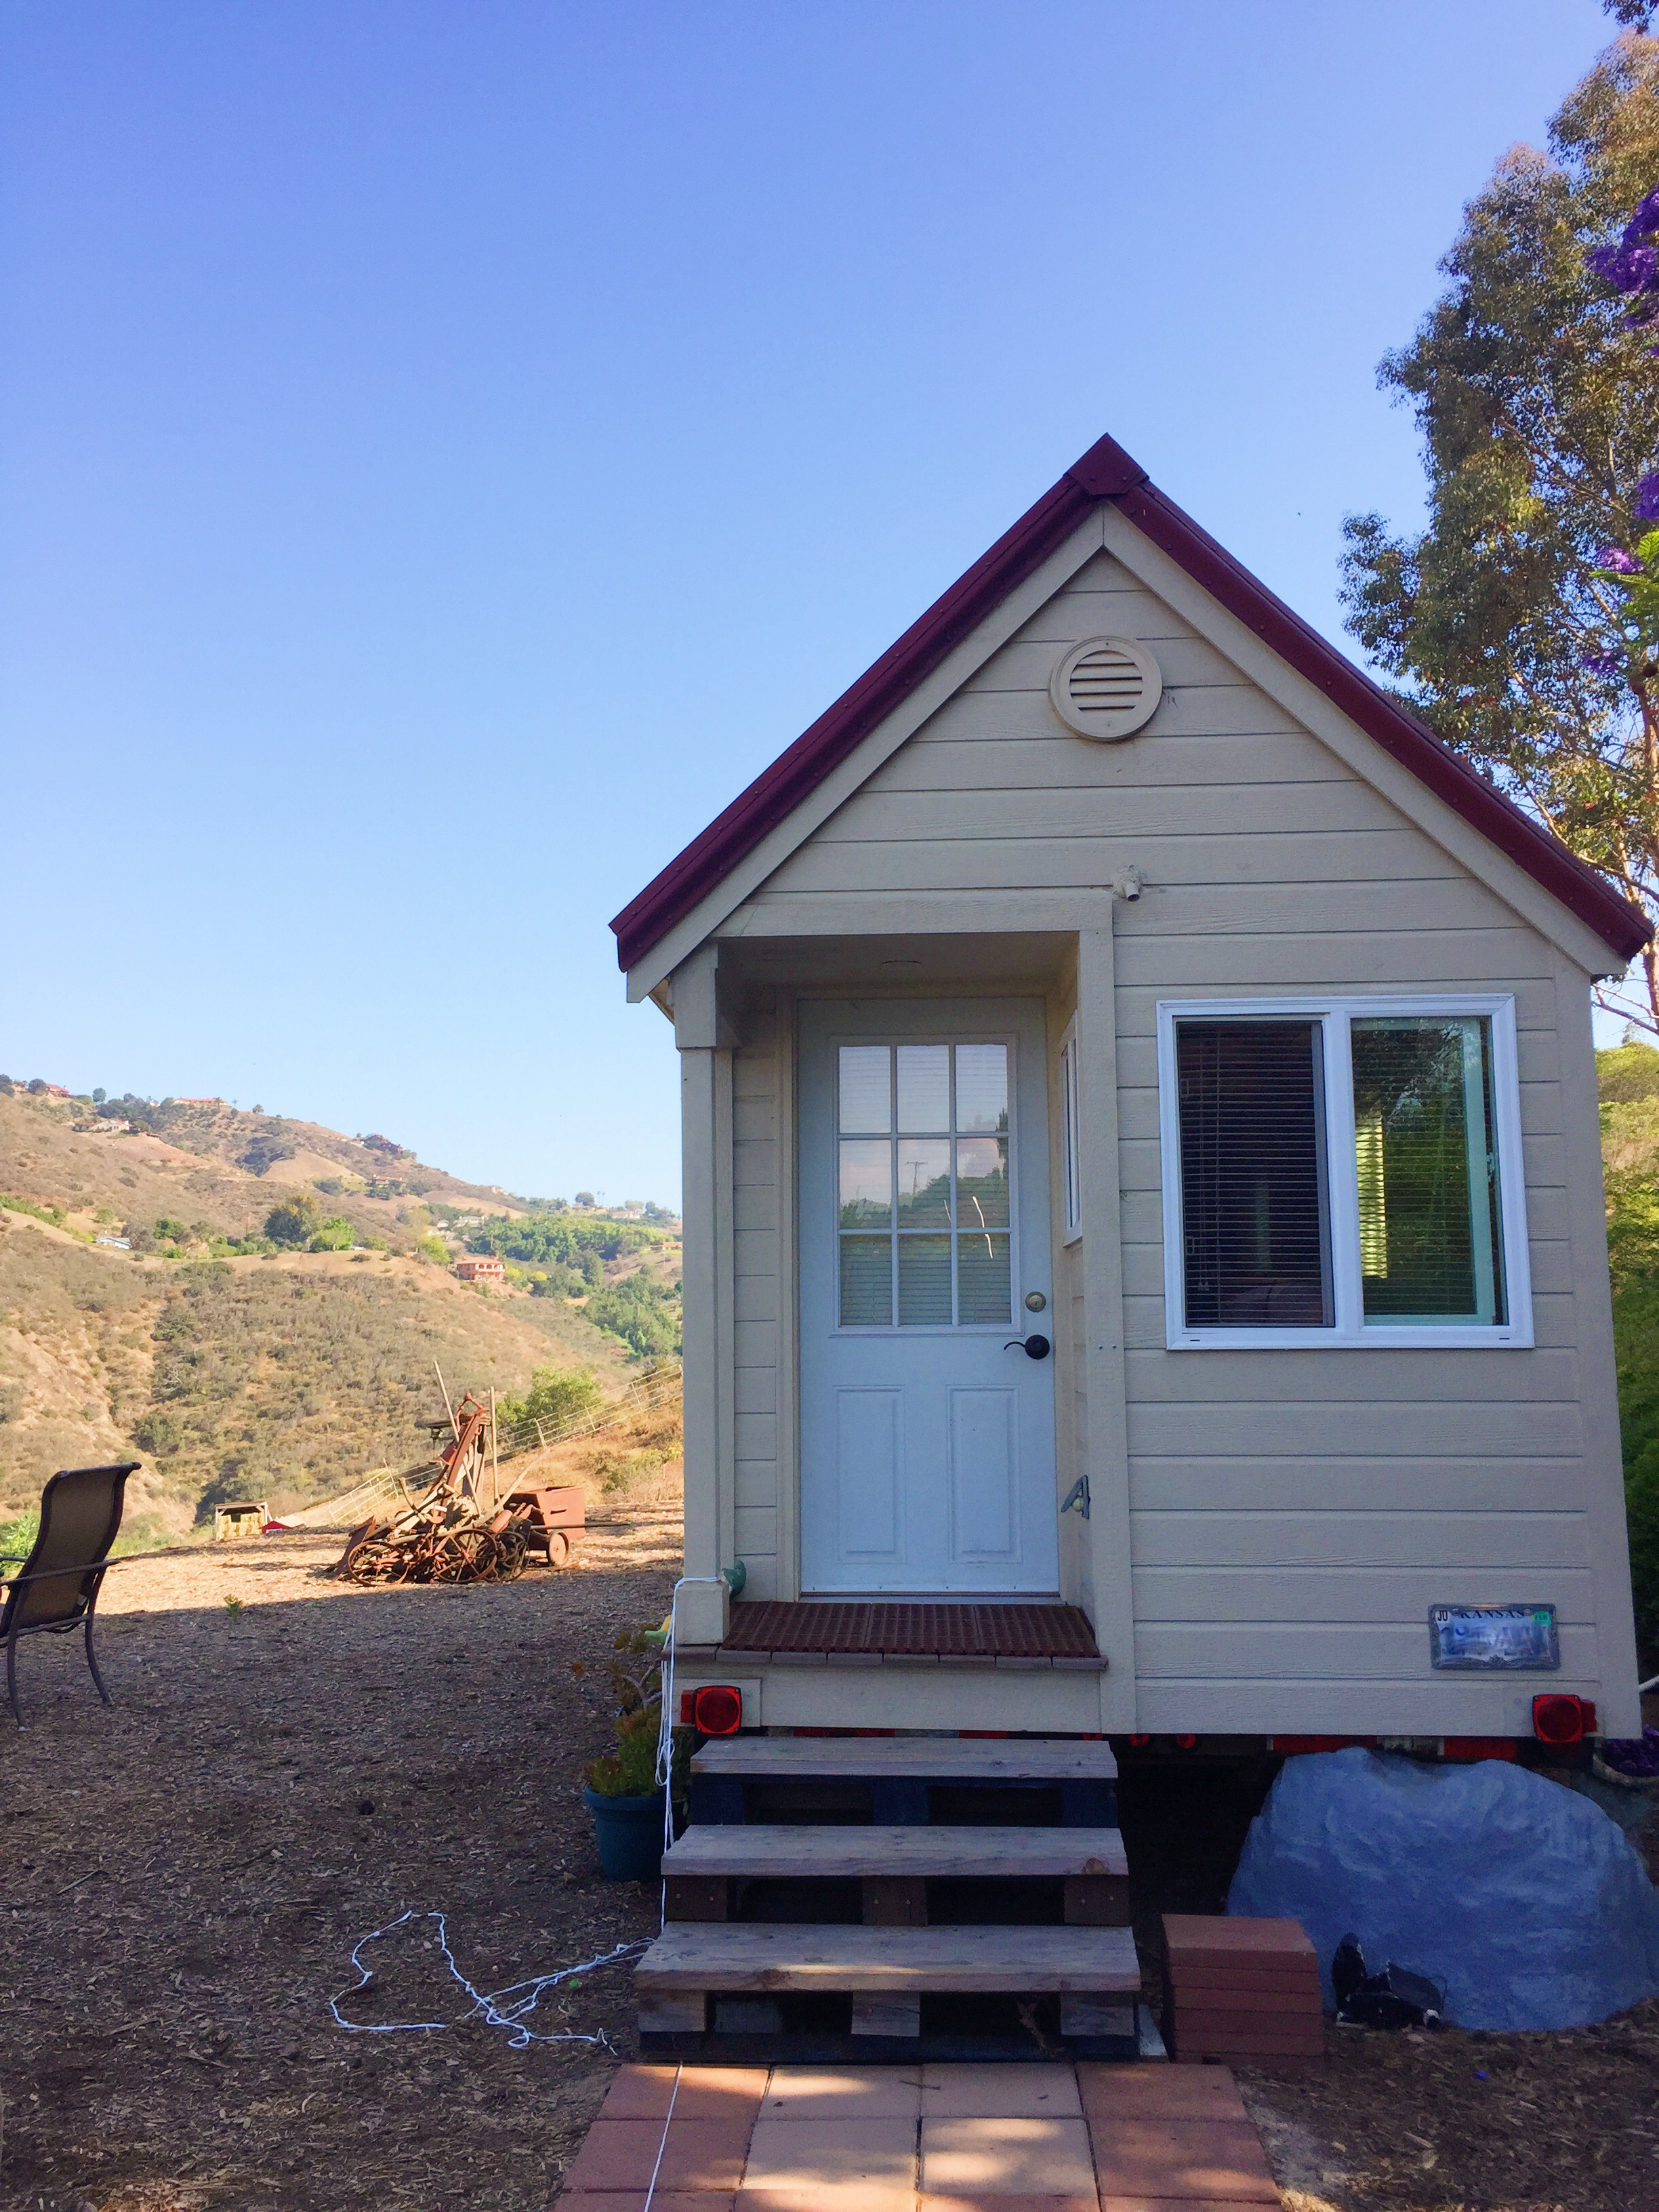 My tiny home on the range © 2015 Sophia Chang